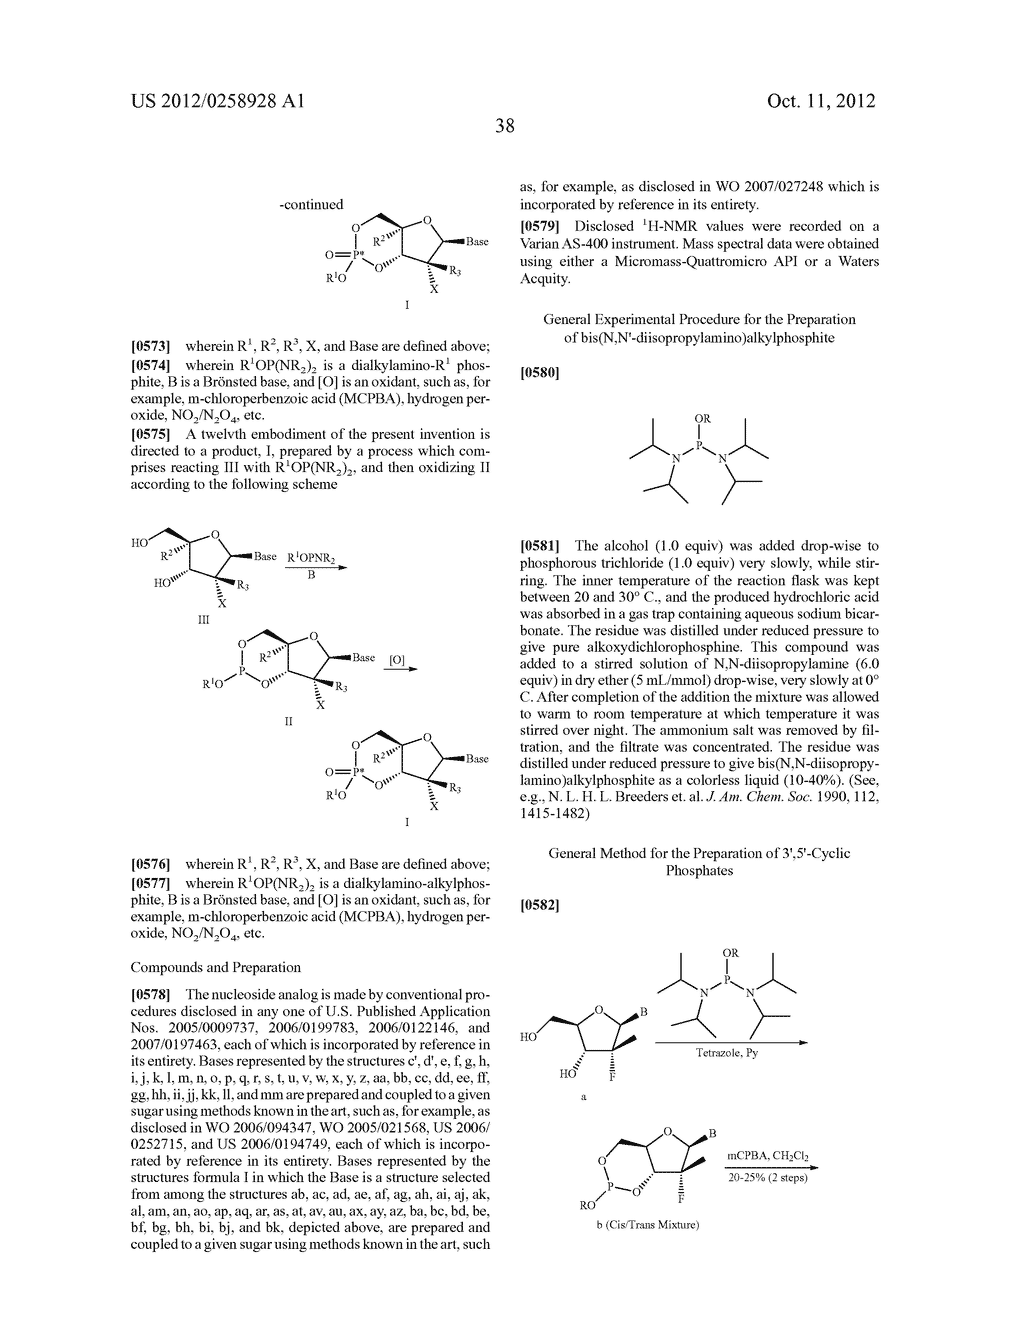 NUCLEOSIDE CYCLICPHOSPHATES - diagram, schematic, and image 39